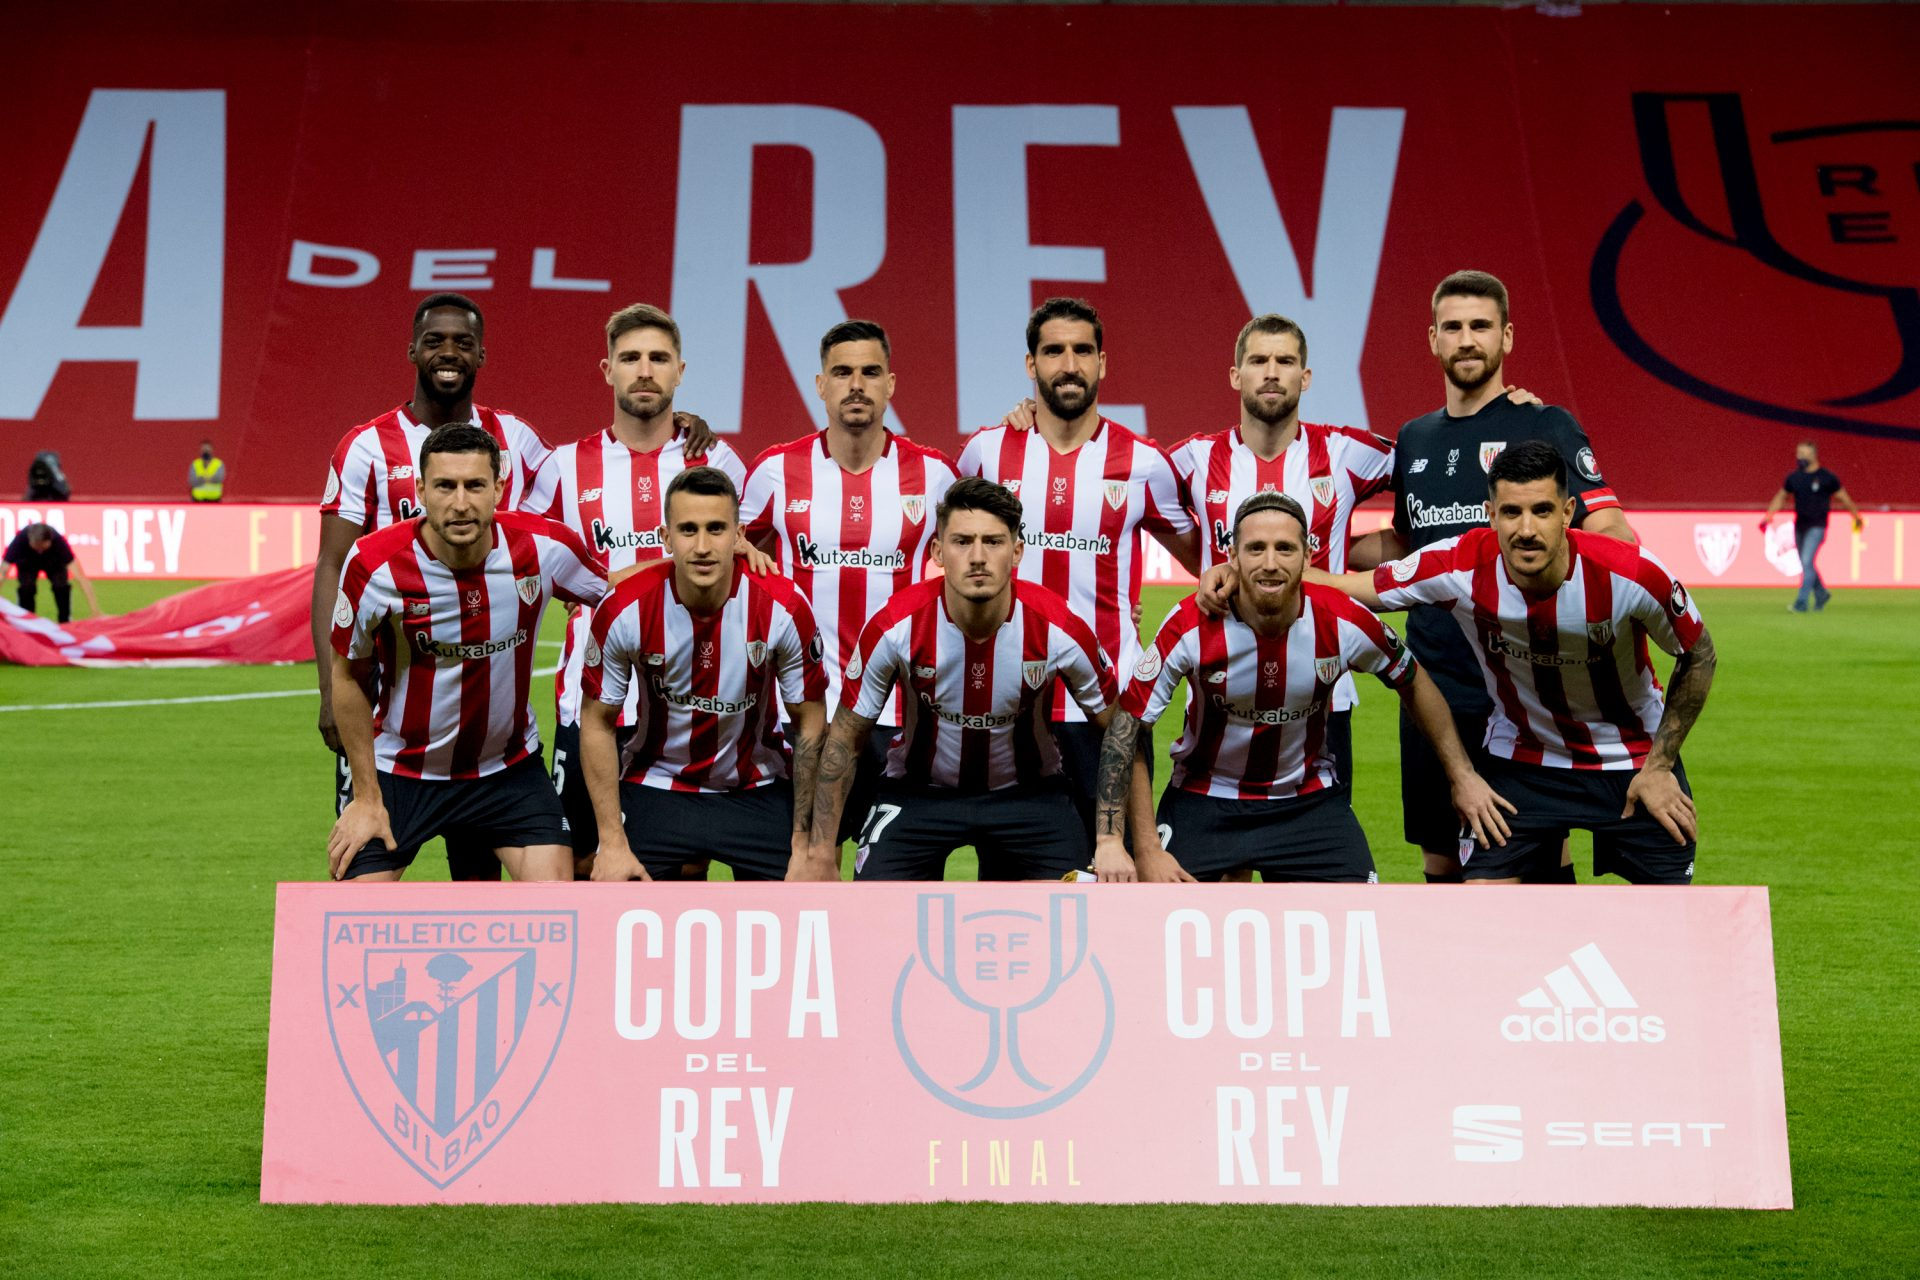 Copa Final 2019-20 I Athletic Club – Real Sociedad